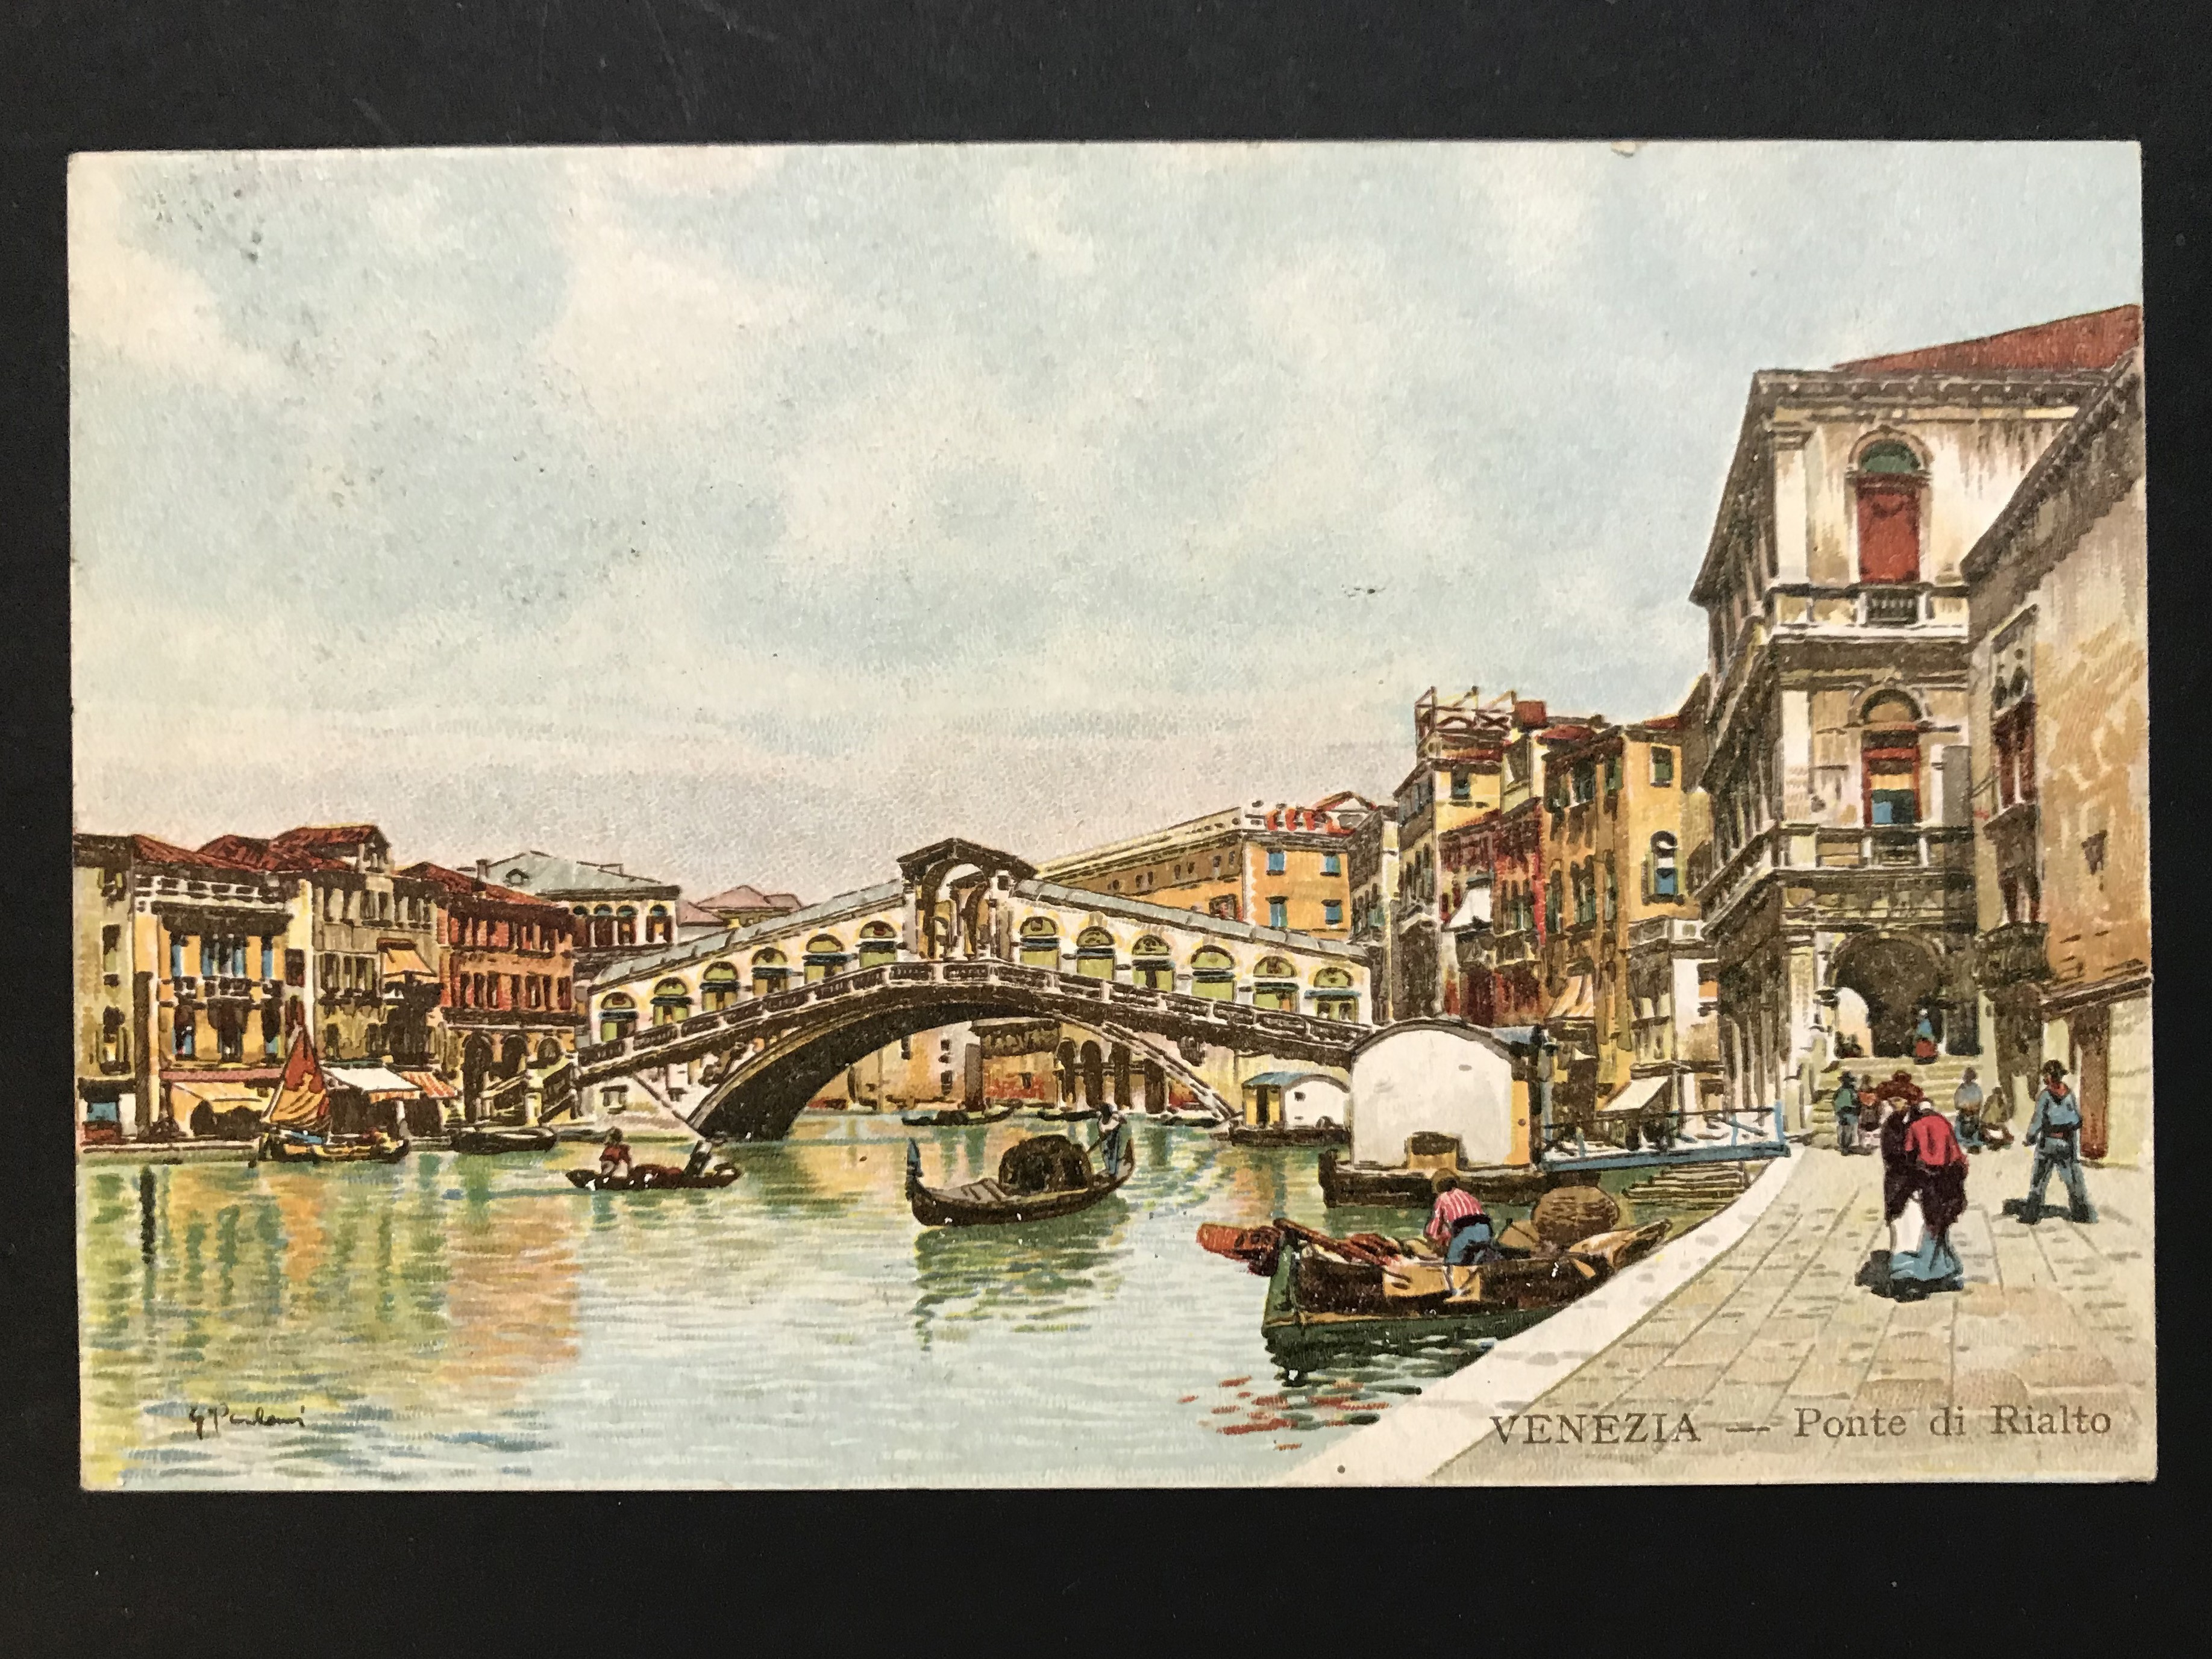 SELECTION OF VENICE RELATED POSTCARDS - Image 5 of 53